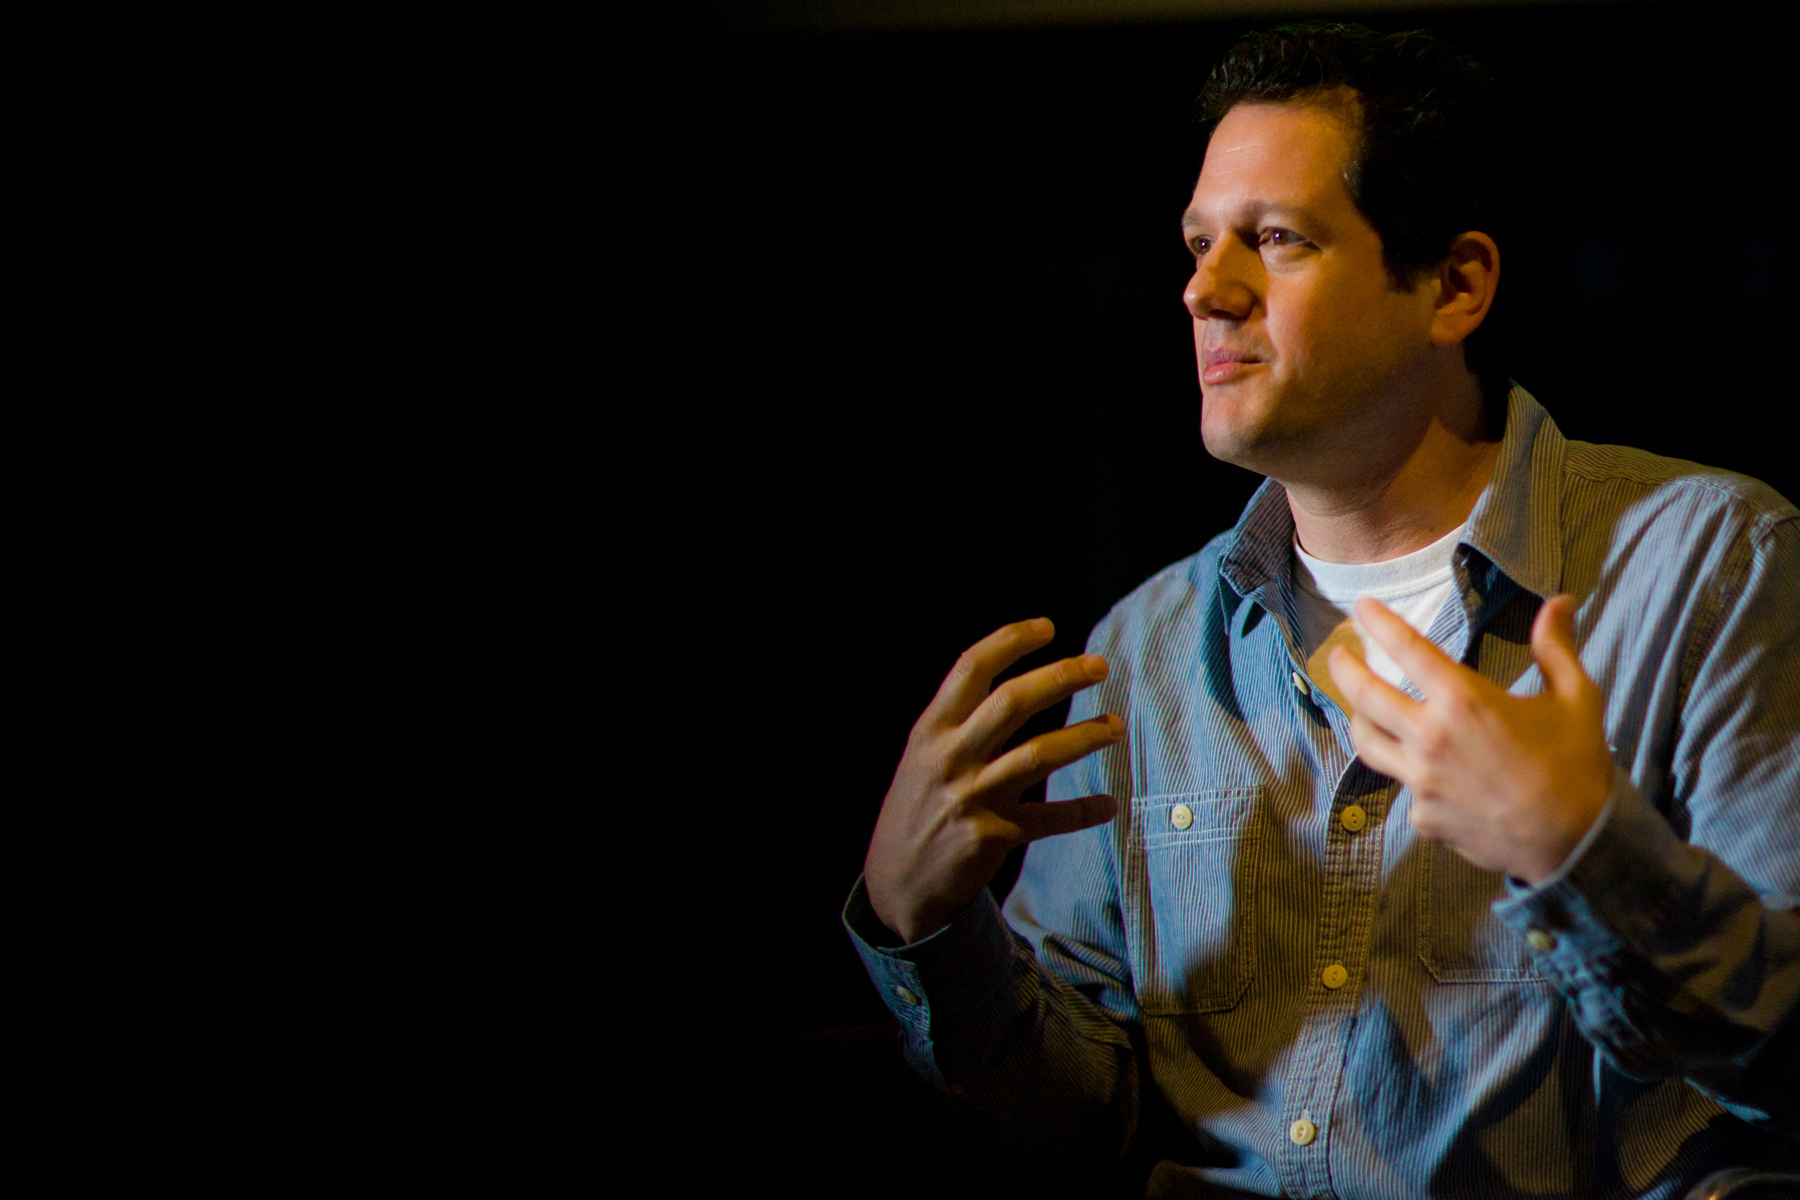 Exclusive: Composer Michael Giacchino Talks Cars 2, The Incredibles, Lost, Inspirations